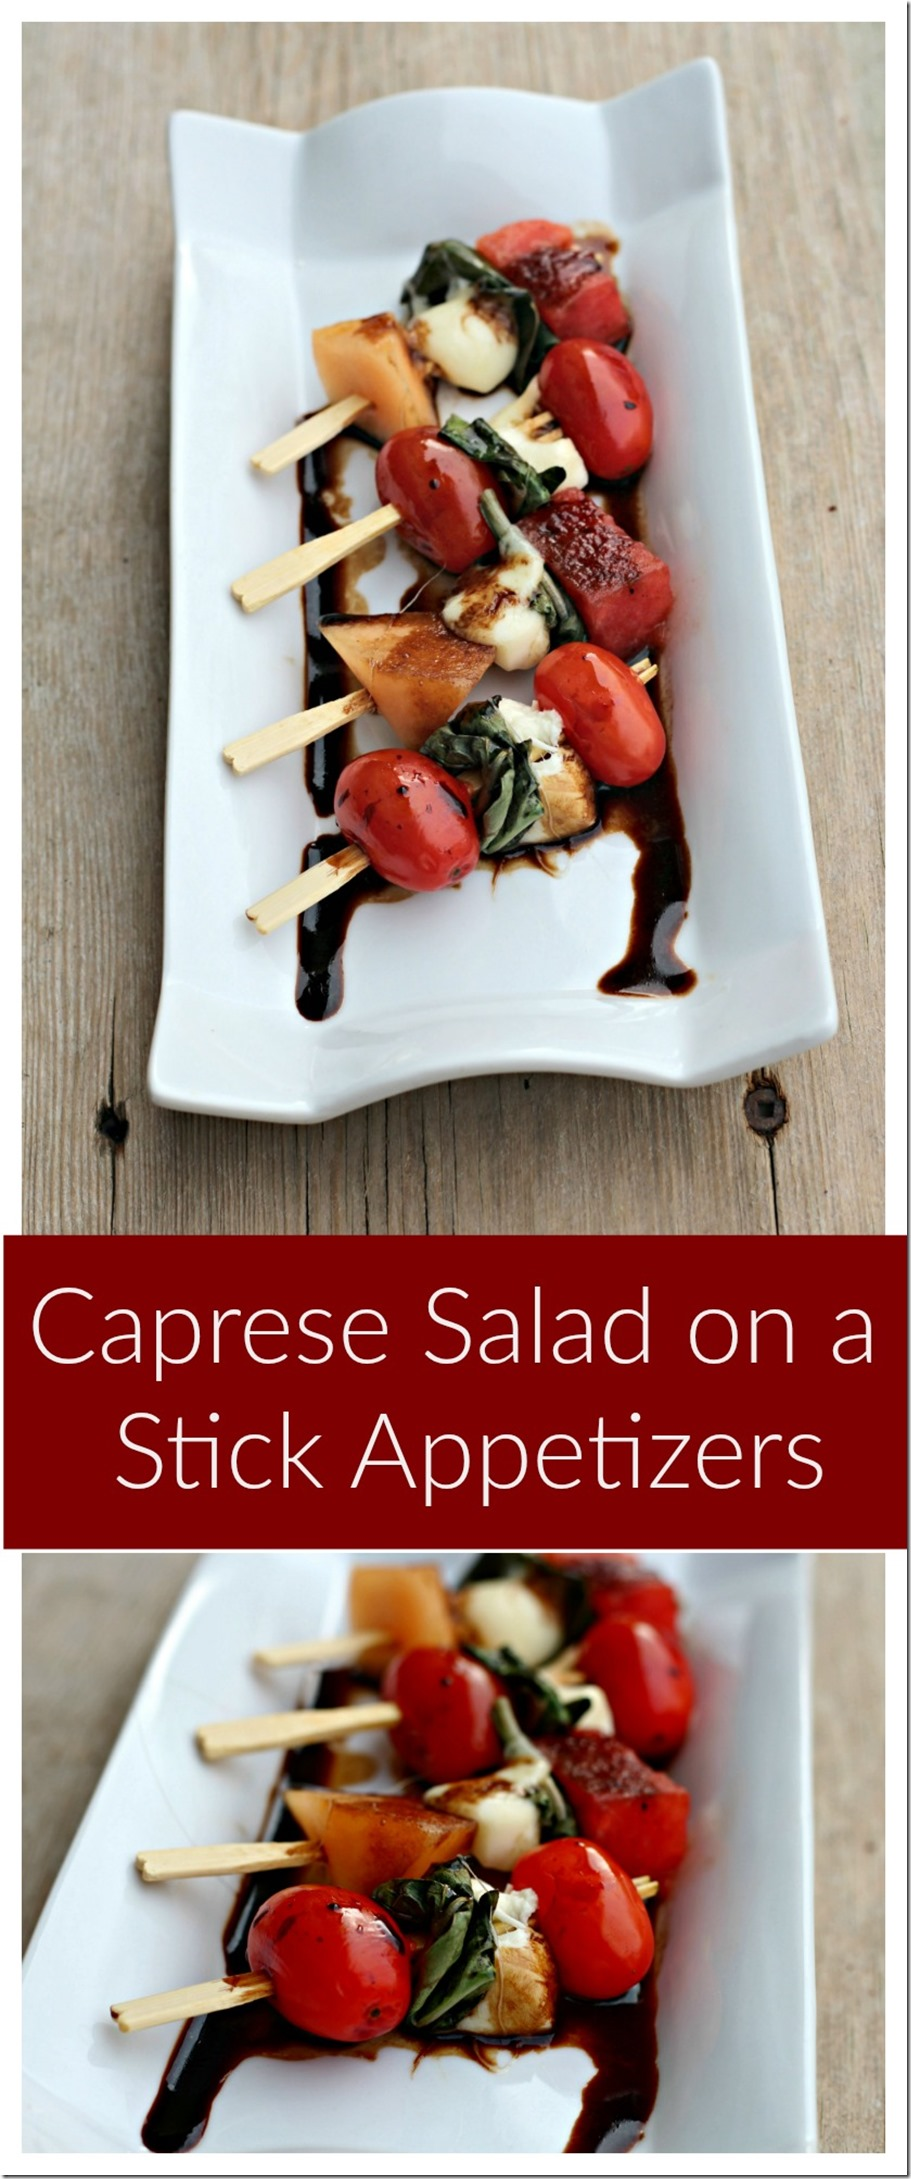 caprese salad on a stick appetizers - perfect for a picnic or bbq